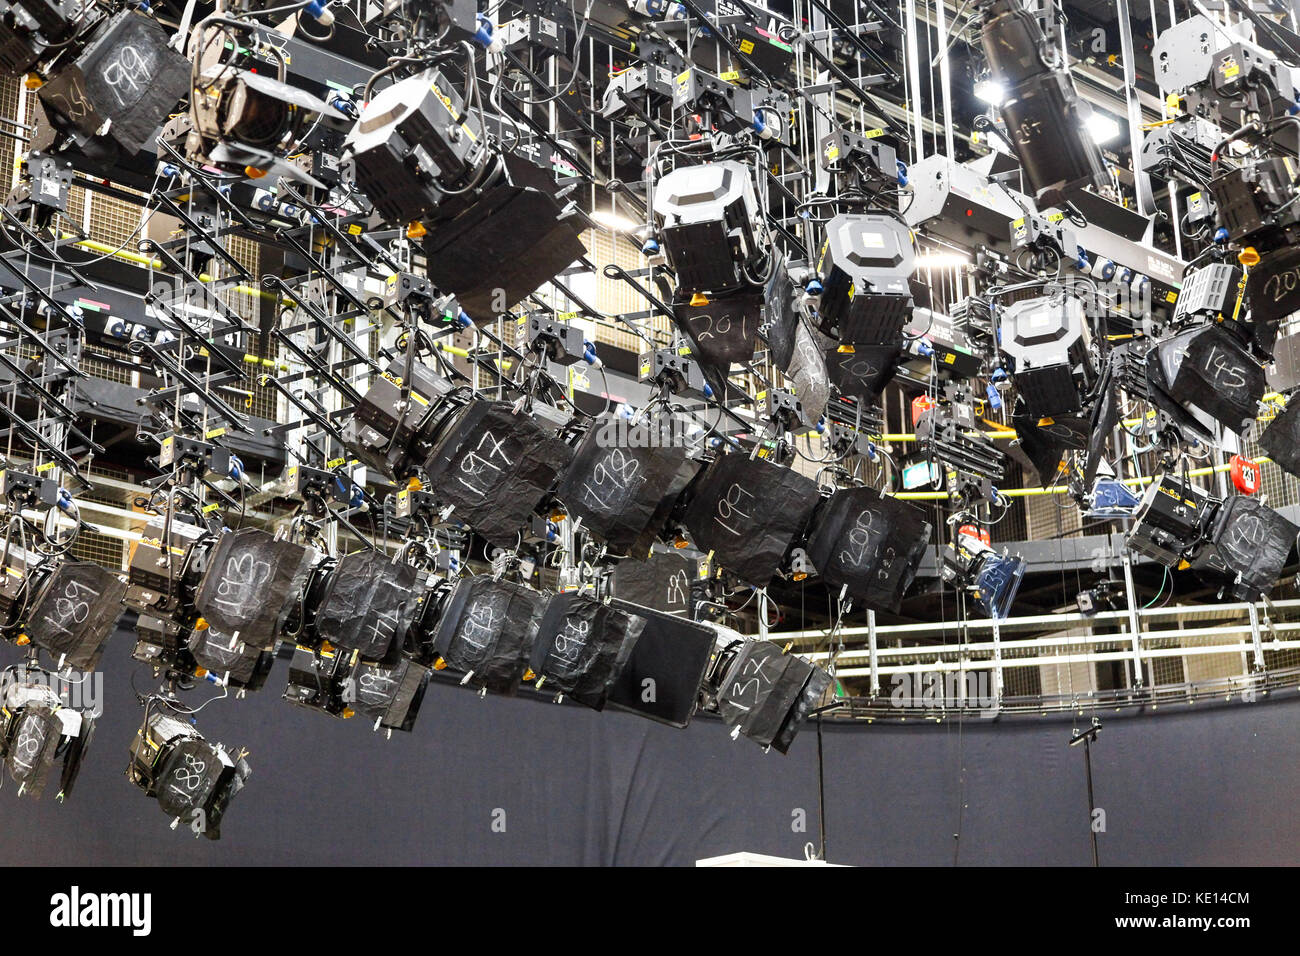 Television lights inside the BBC TV sport studios at Media City UK in Salford and Trafford, Greater Manchester, - Stock Image